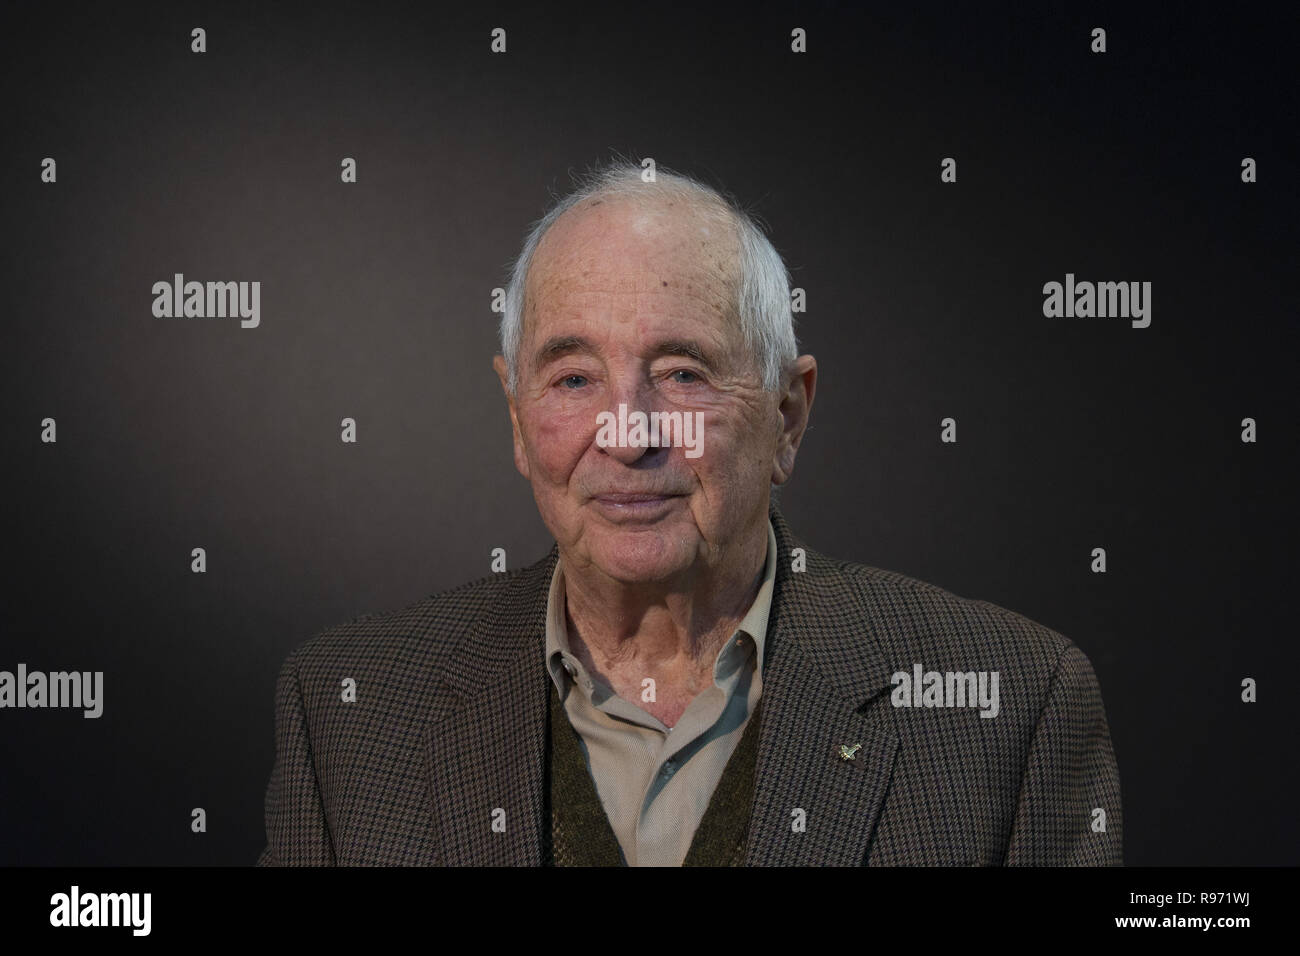 Former NASA Astronaut Bill Anders poses for a portrait in Burlington, Washington on November 21, 2018. 21st Nov, 2018. Anders took the iconic ''Earthrise'' photo during NASA's Apollo 8 mission. Credit: David Ryder/ZUMA Wire/Alamy Live News - Stock Image